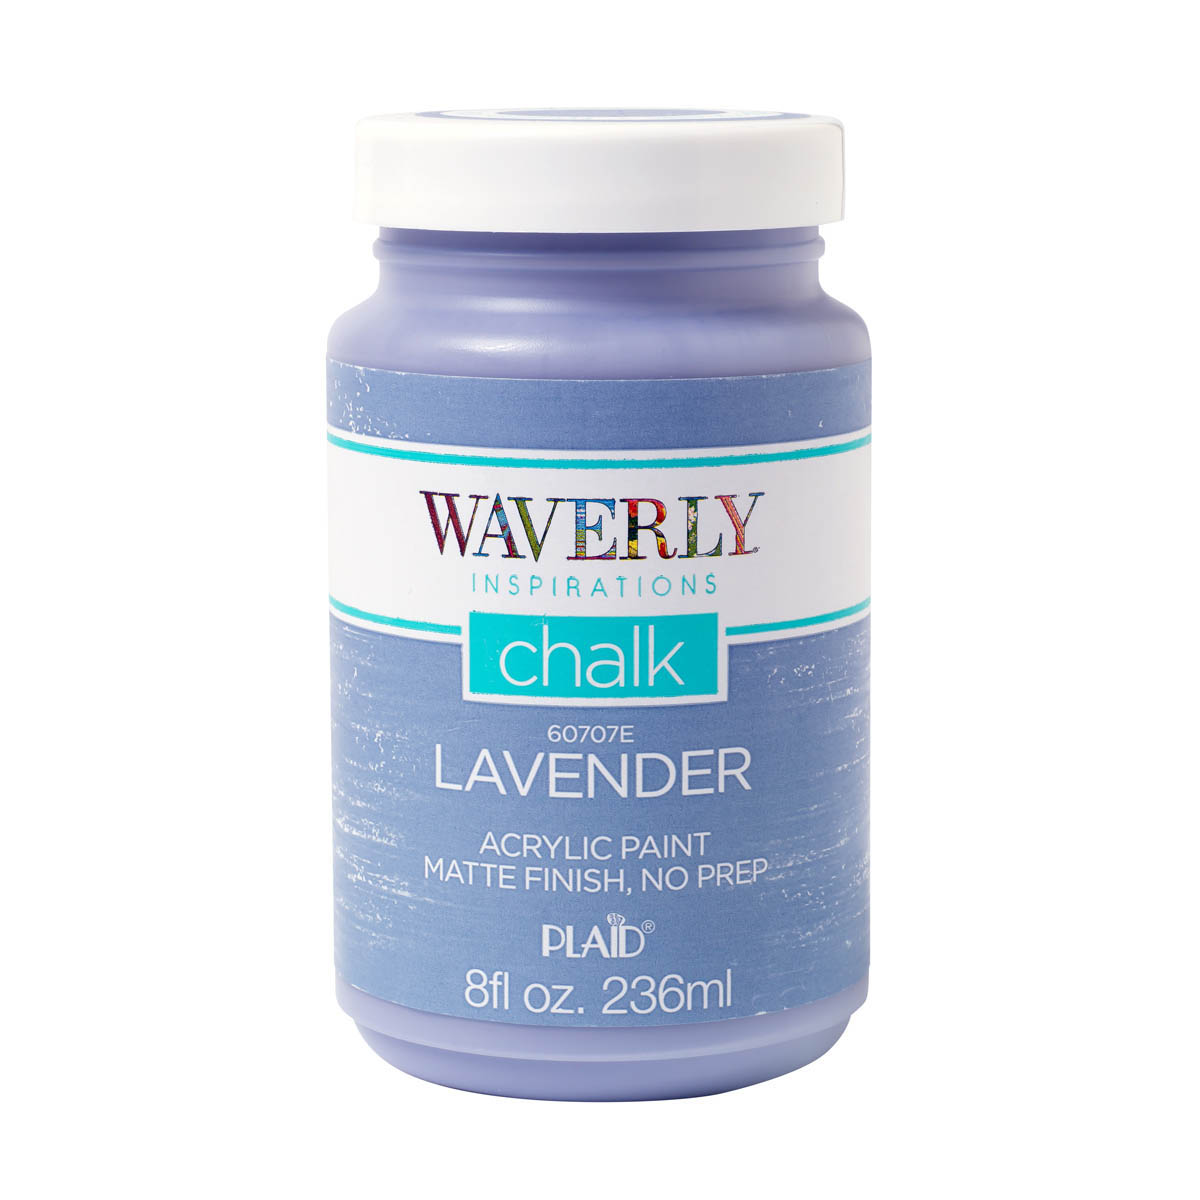 Waverly ® Inspirations Chalk Acrylic Paint - Lavender, 8 oz.